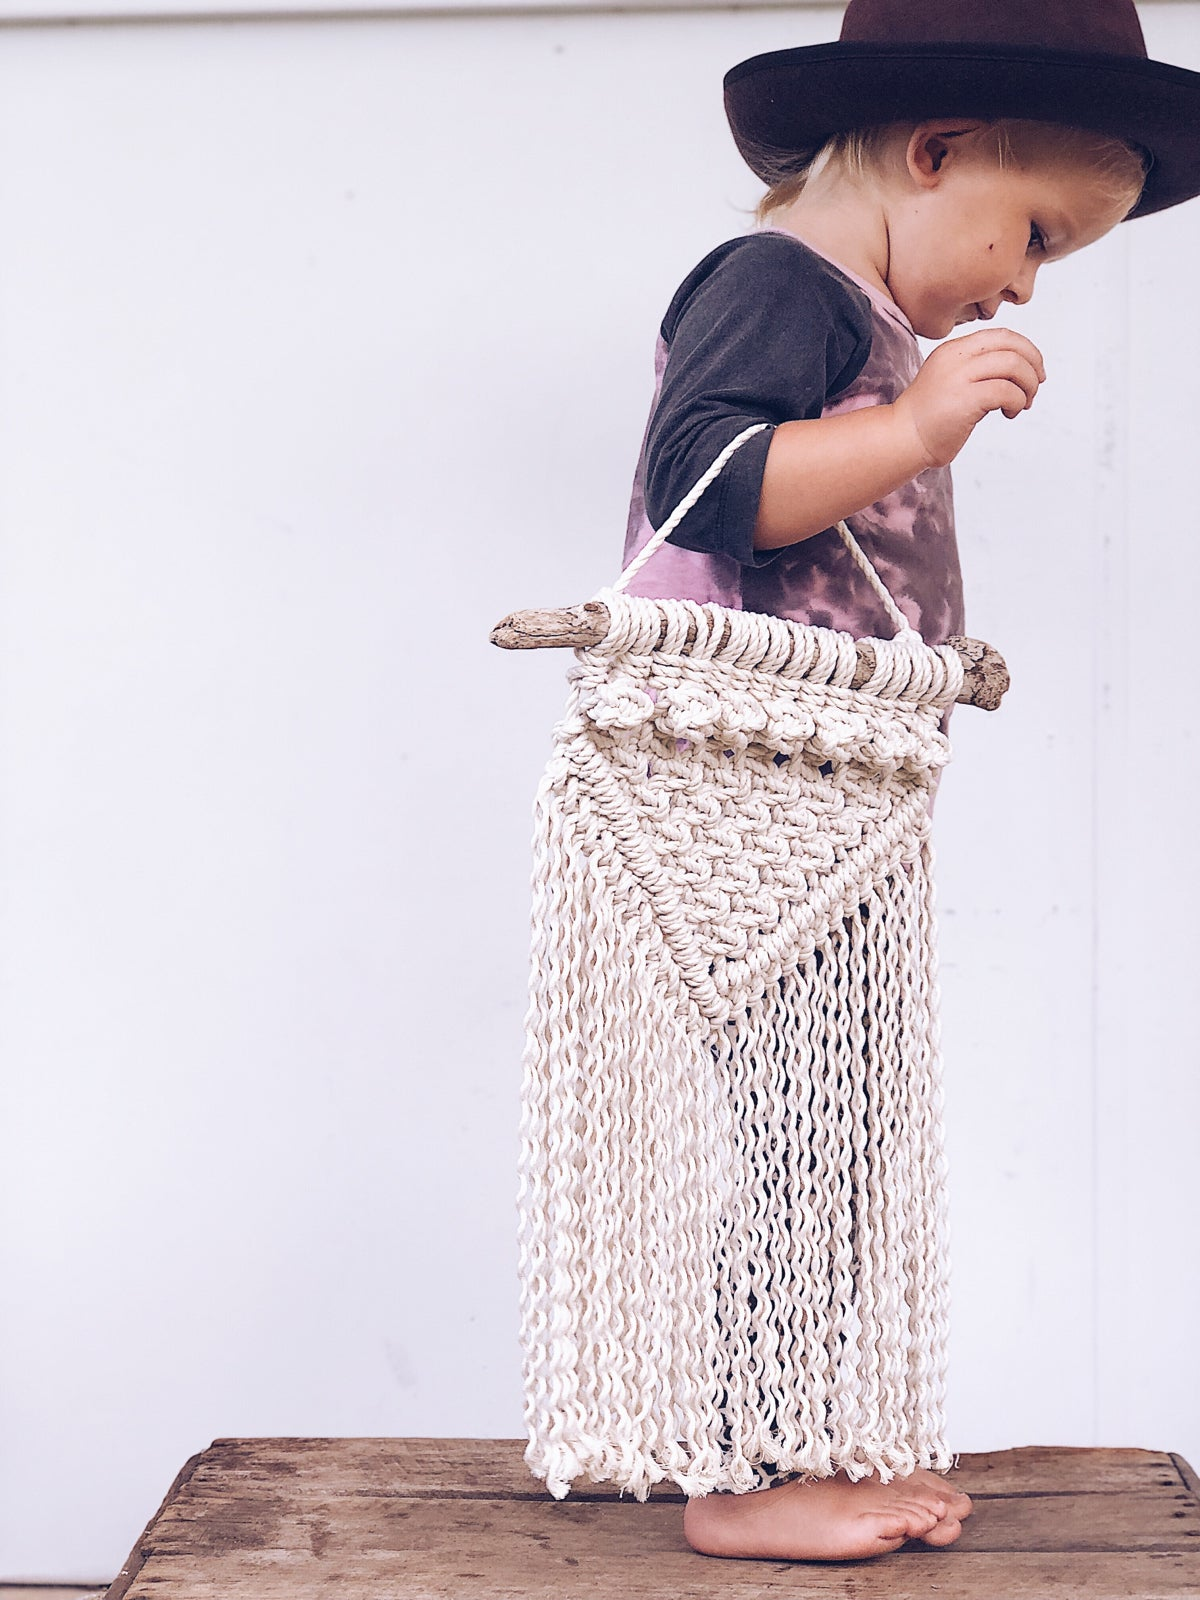 Image of Macrame Workshops